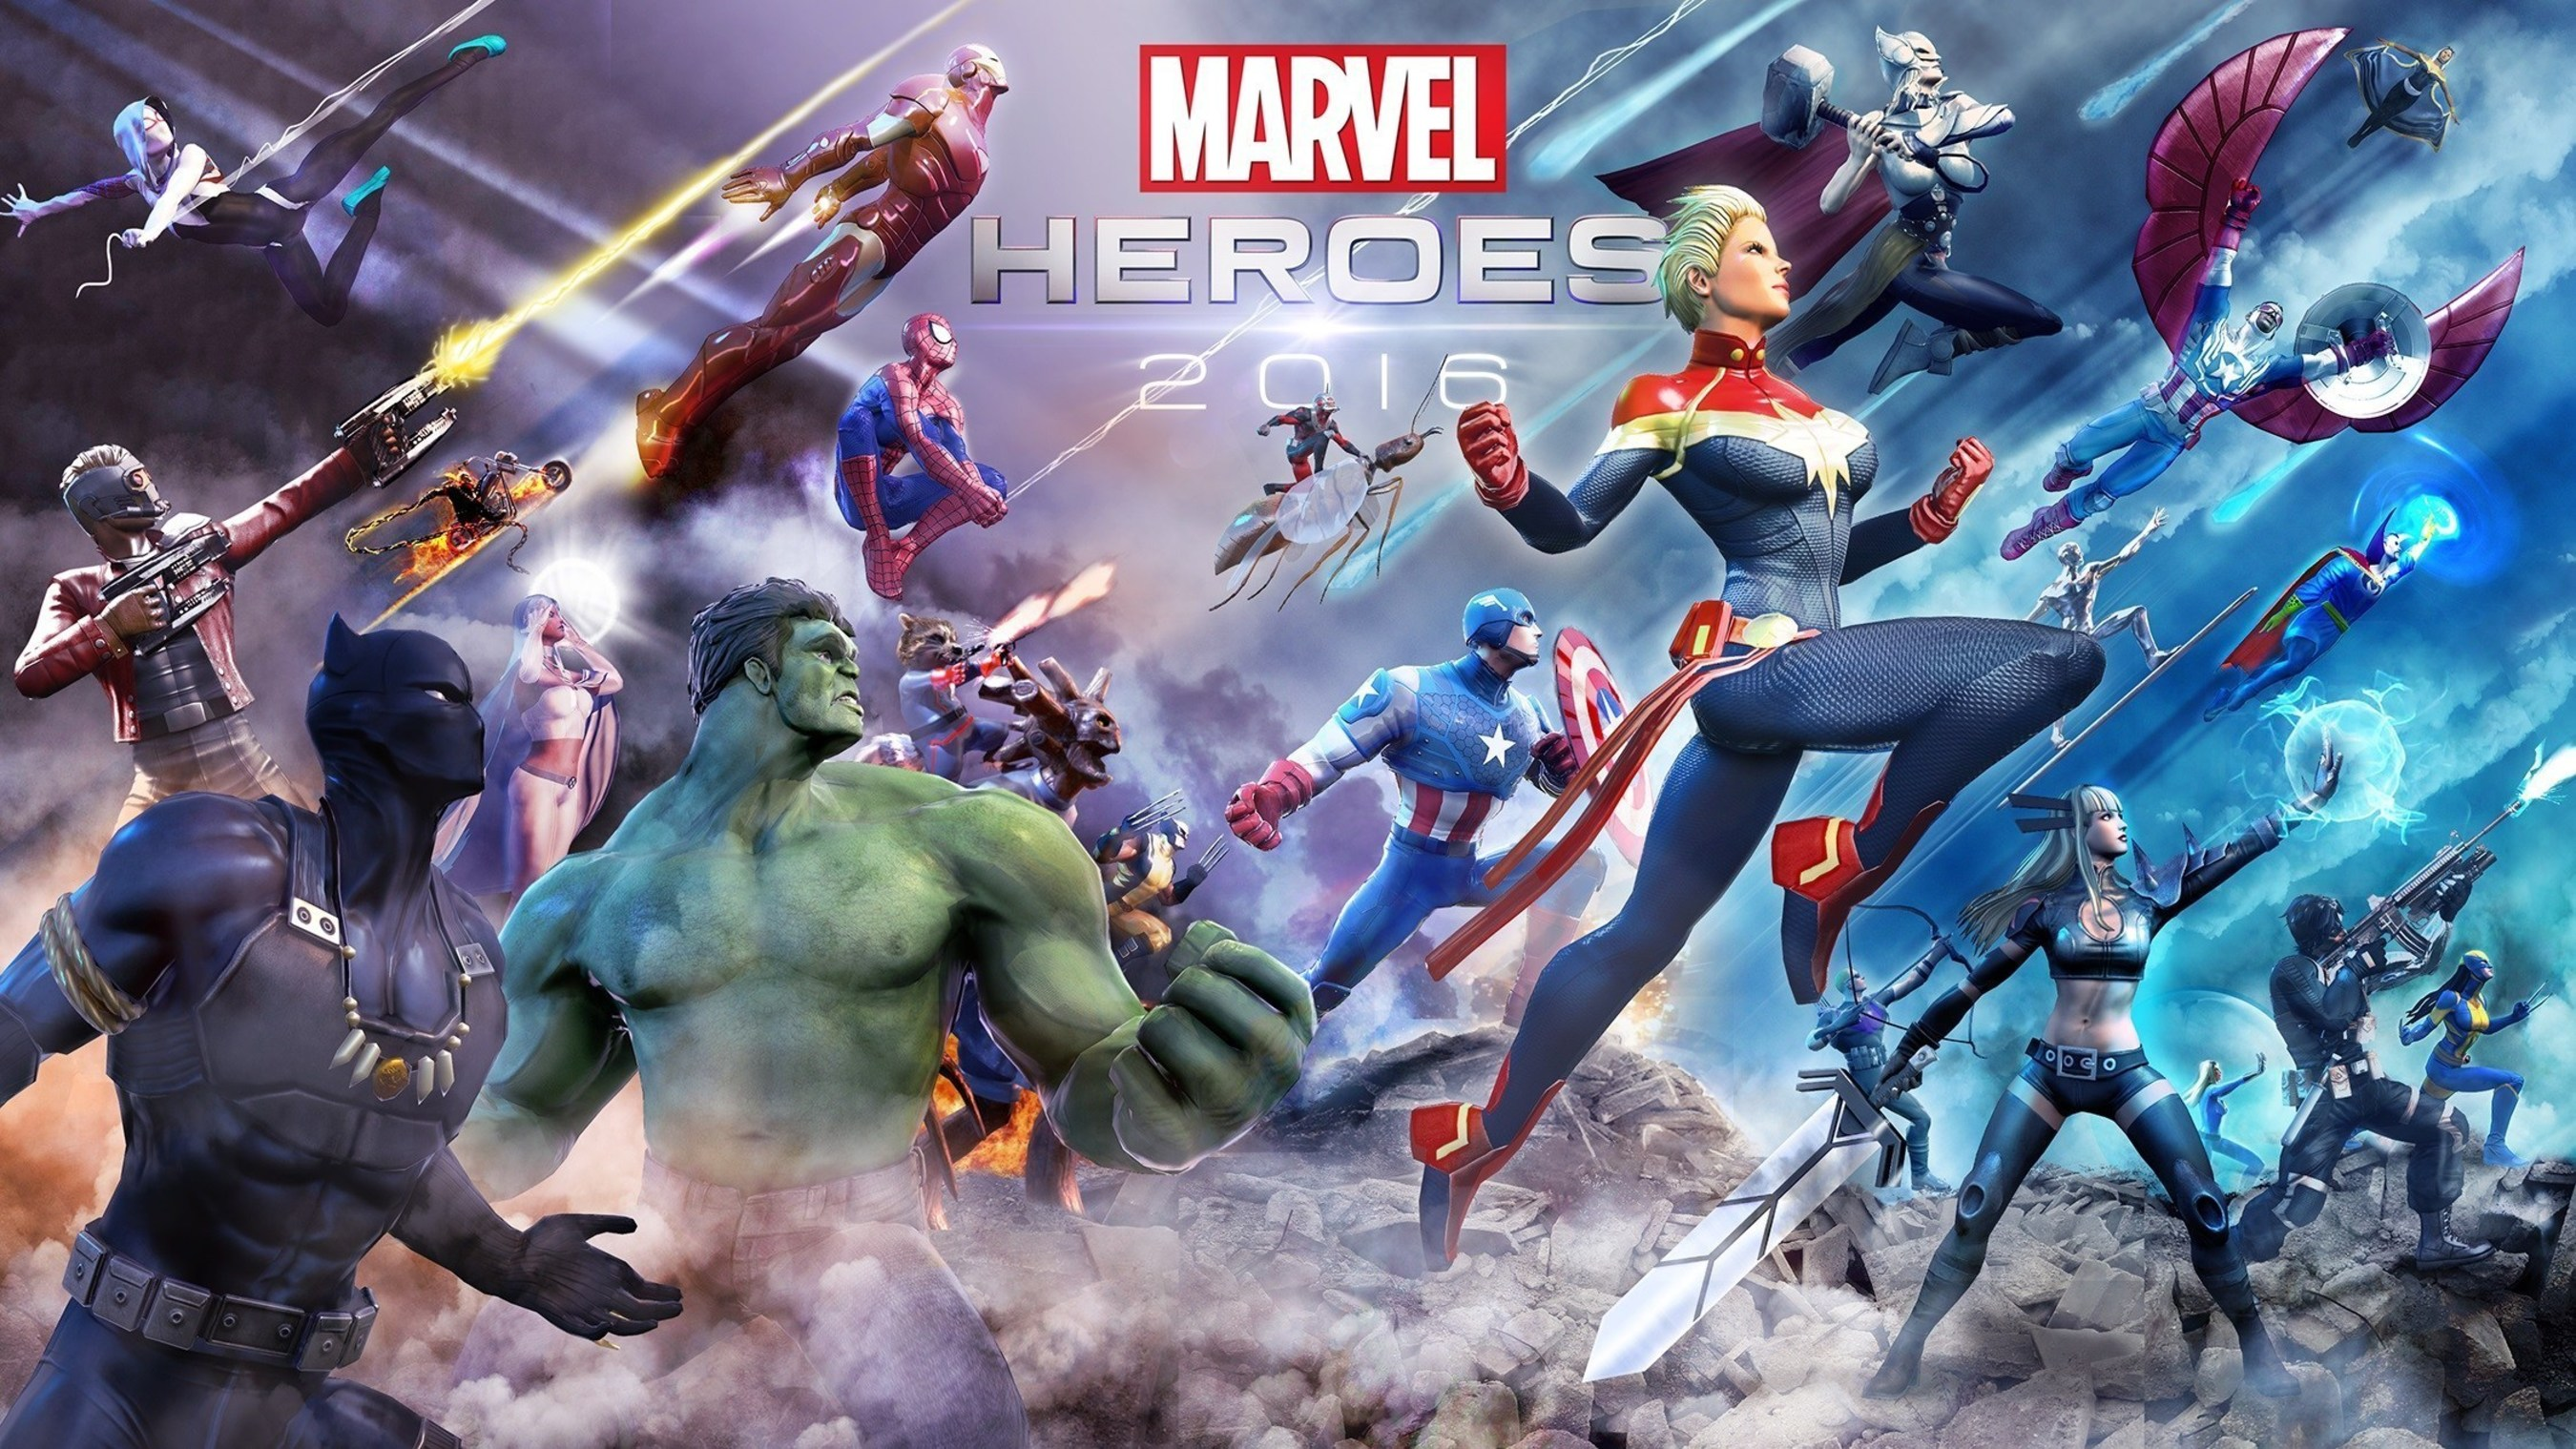 Gazillion's 'Marvel Heroes 2016' Initiative Begins Today